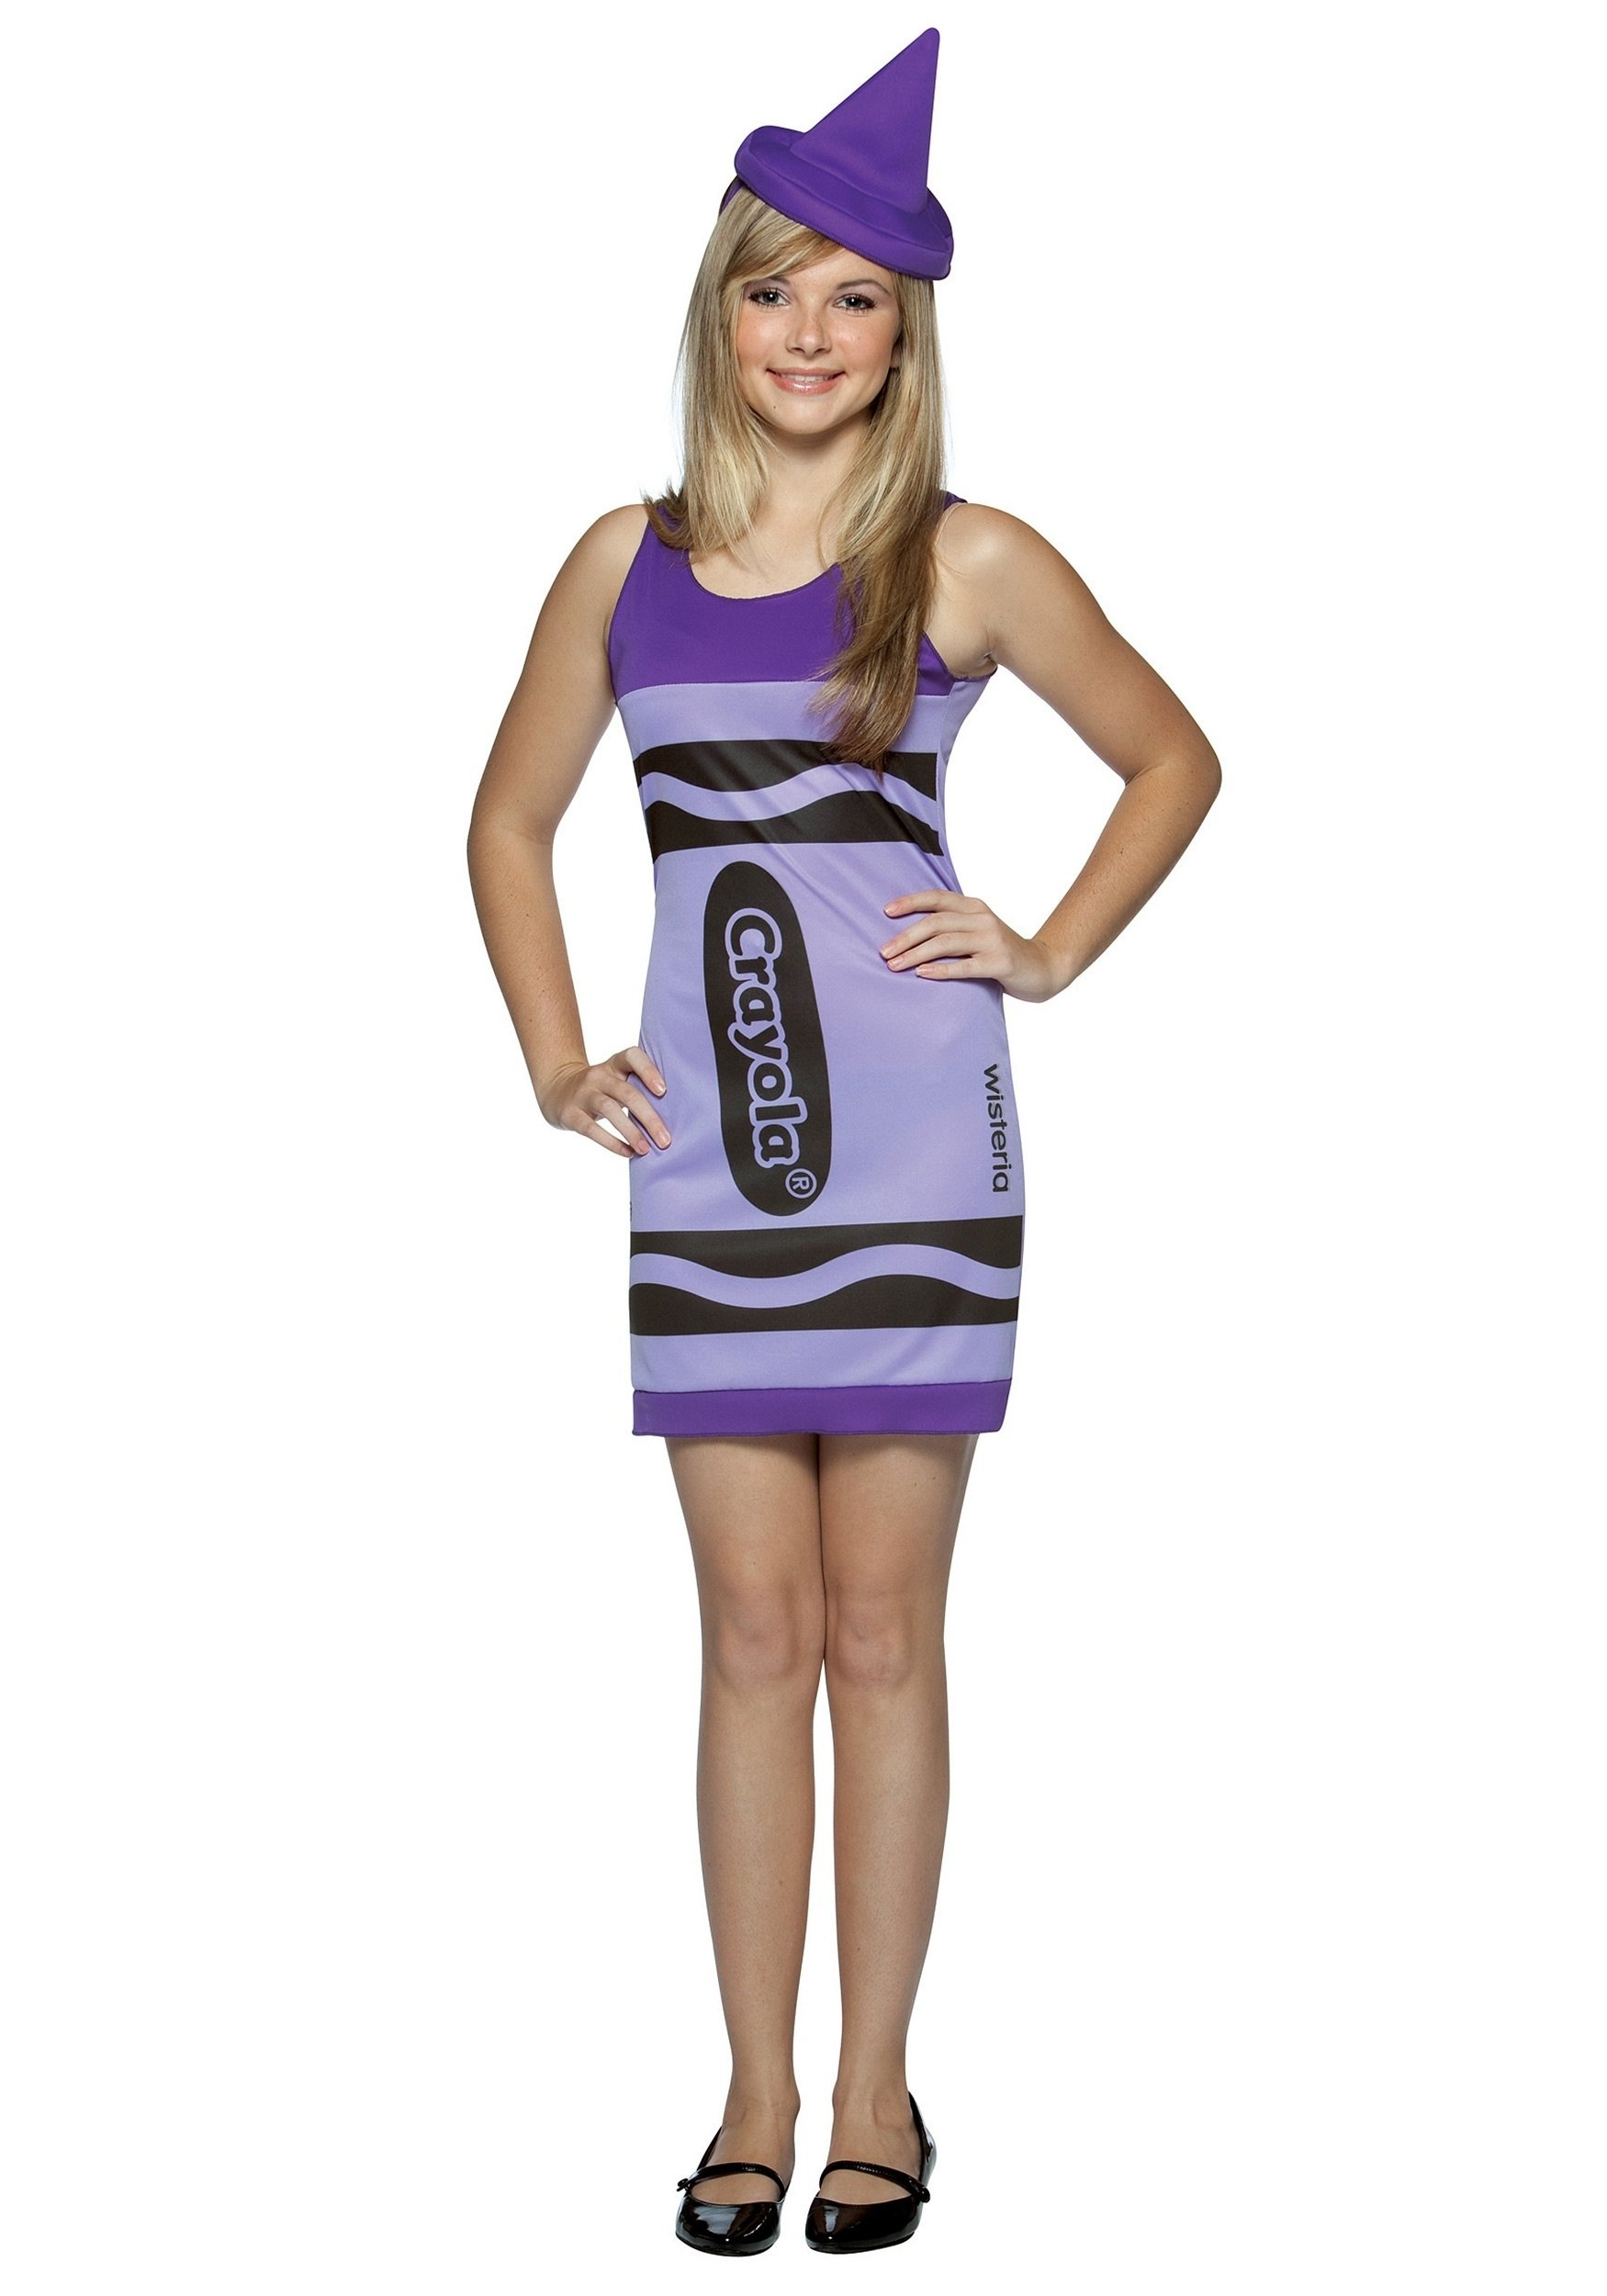 10 Amazing Halloween Costume Ideas Teenage Girls wisteria teen crayon costume halloween costume ideas for teens 34